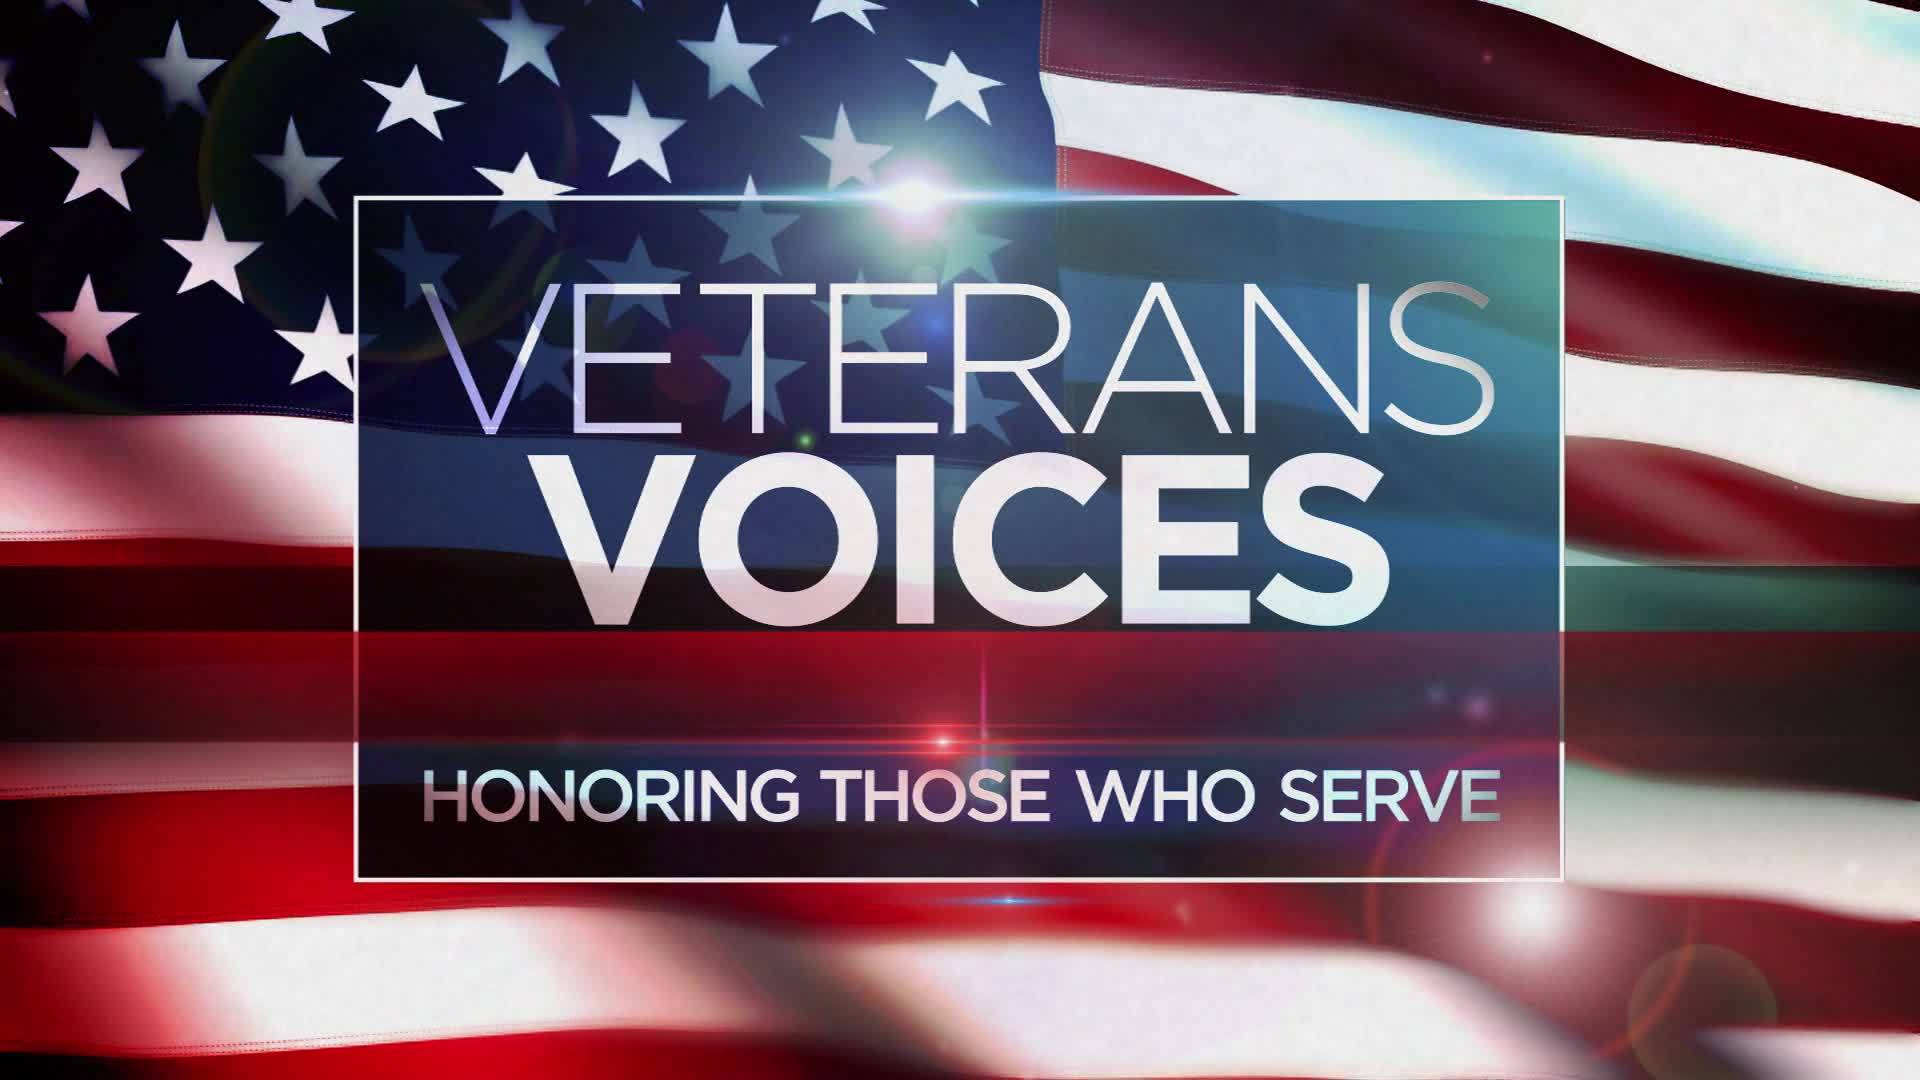 Veterans Voices: Honoring Those Who Serve